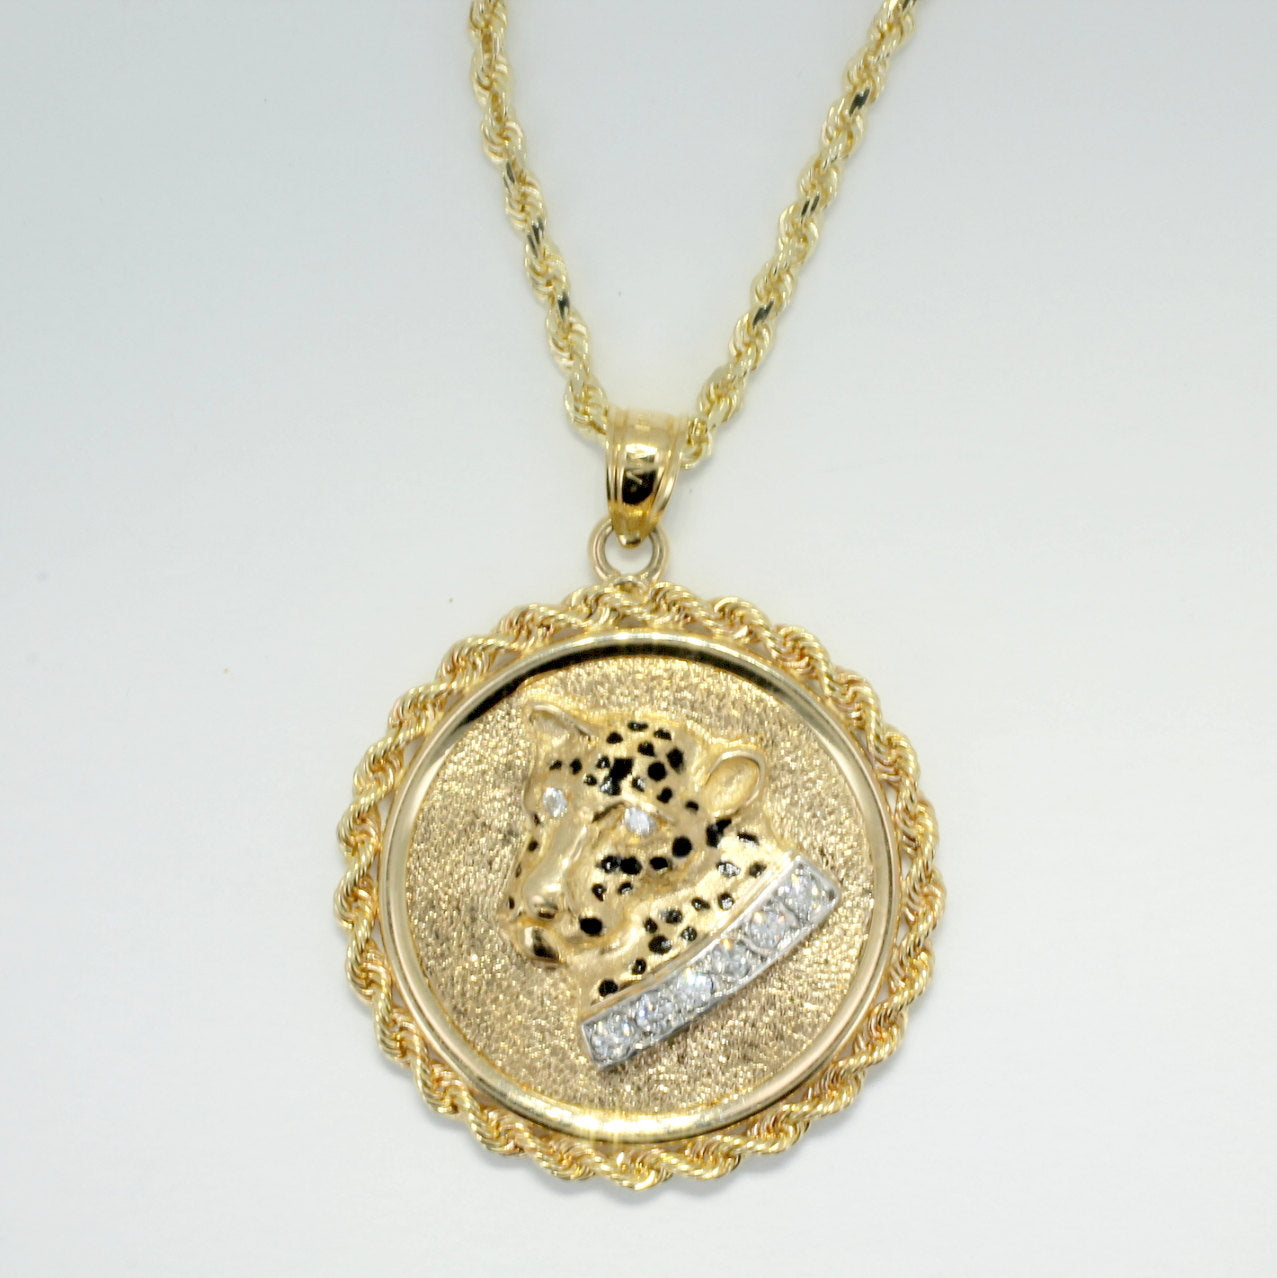 medallion jewelry order nikki truth shop special hidden gold large medallions